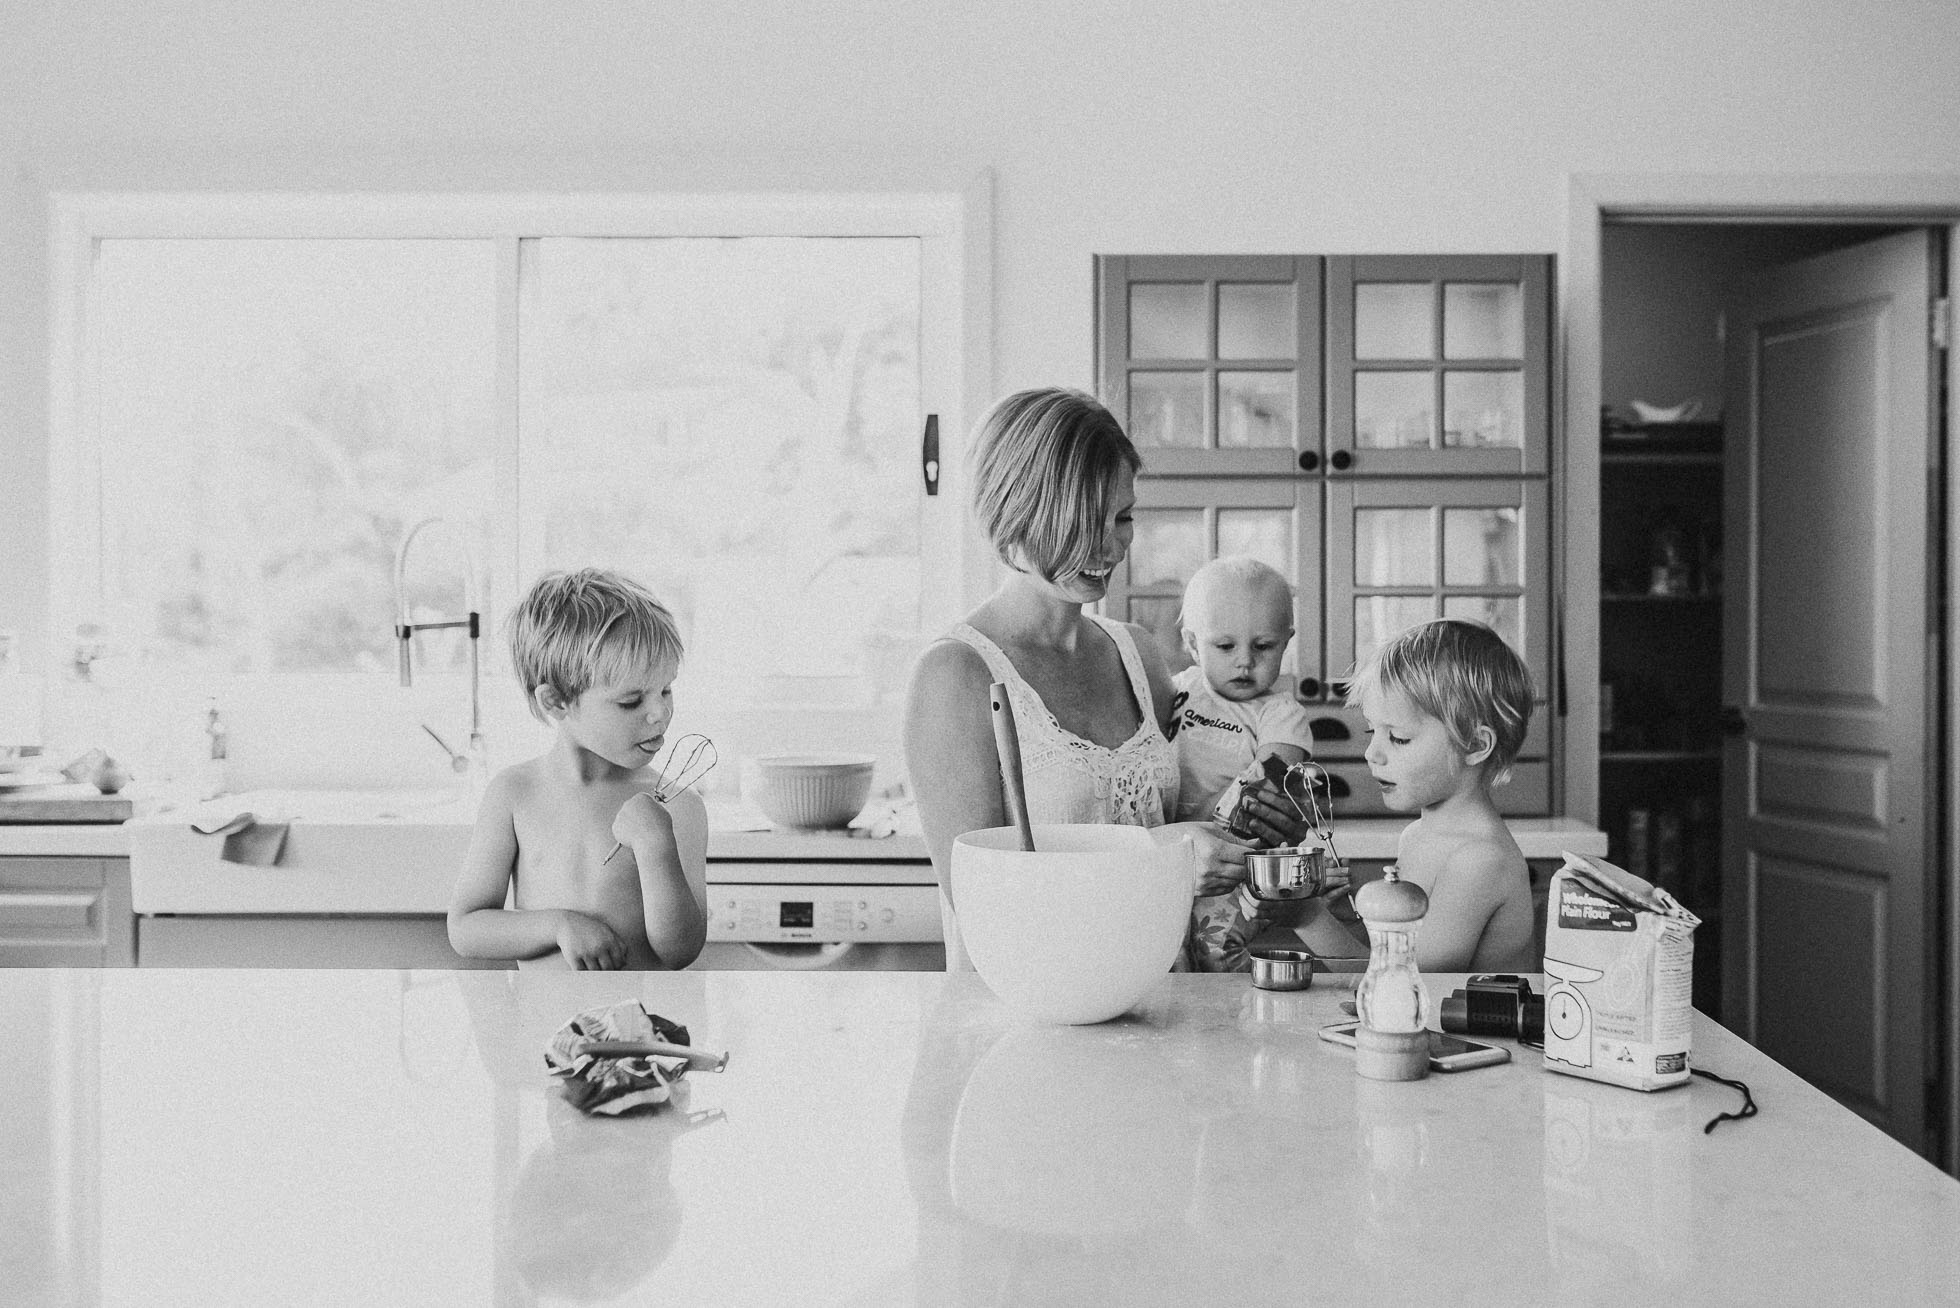 self-portrait-in-kitchen-baking-with-children-black-and-white-photography.jpg